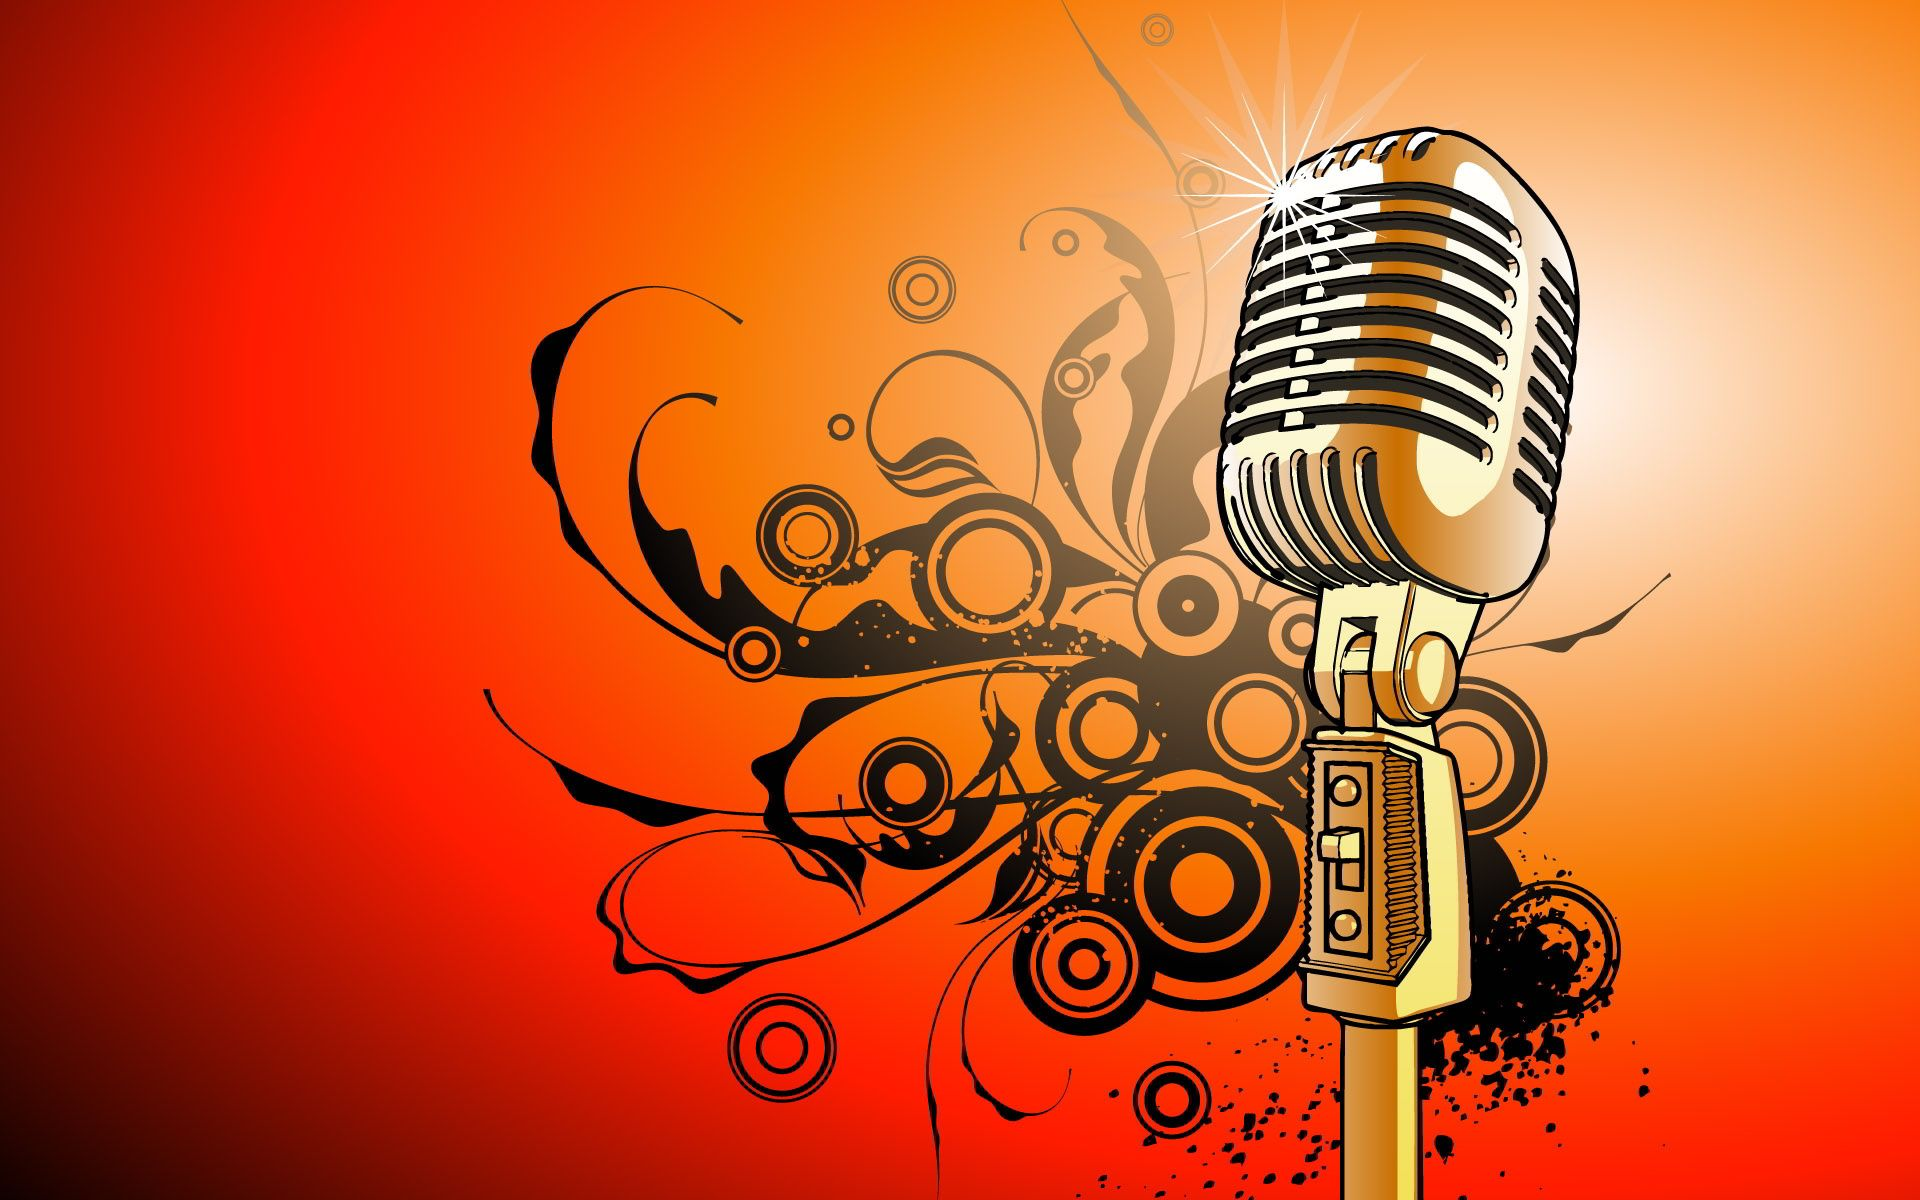 Music vector art colorful wallpaper free download png - Microphone Vector Art Wallpapers Pictures Free Wallpaper Backgroundsmusic